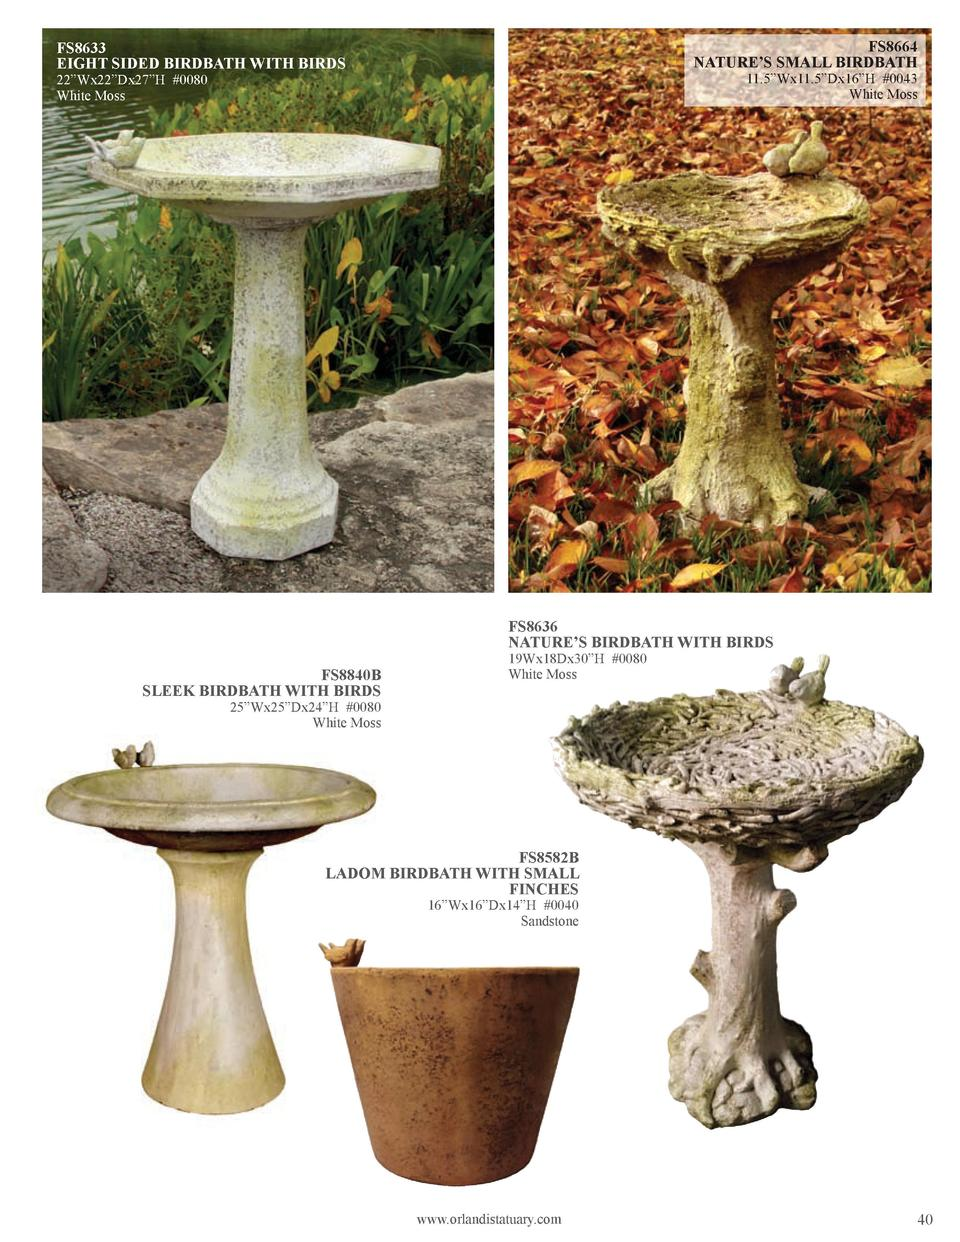 FS8664 NATURE   S SMALL BIRDBATH  FS8633 EIGHT SIDED BIRDBATH WITH BIRDS  11.5   Wx11.5   Dx16   H  0043 White Moss  22   ...